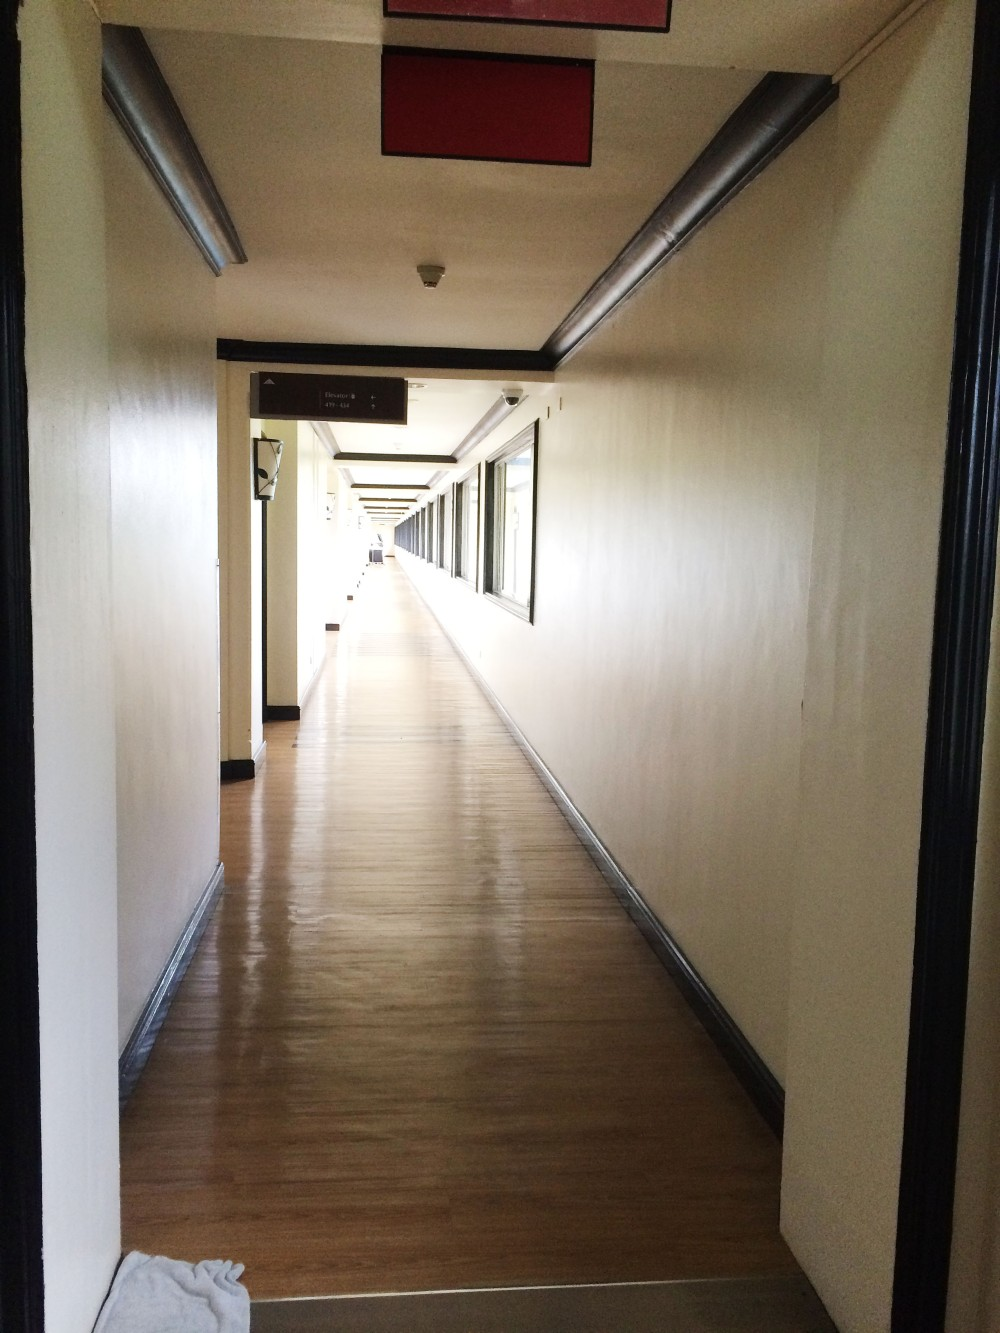 The rooms were located in a different building. The corridor looked scary and old.